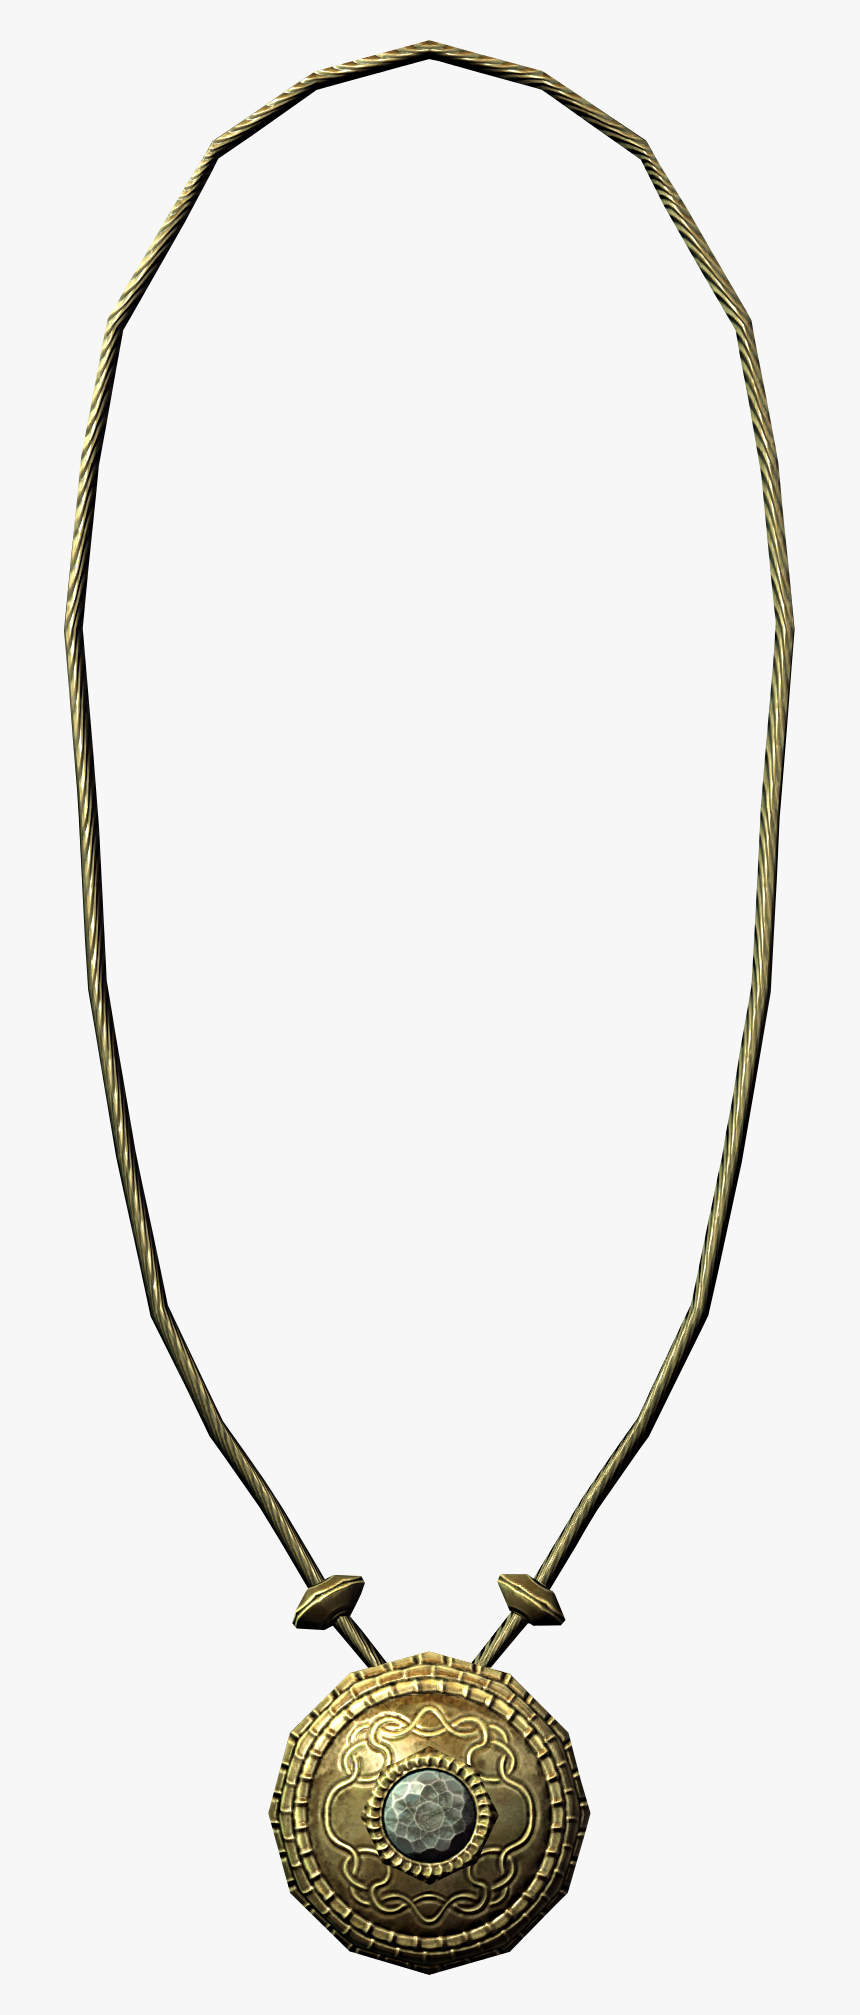 Elder Scrolls - Skyrim Gold Necklace, HD Png Download, Free Download